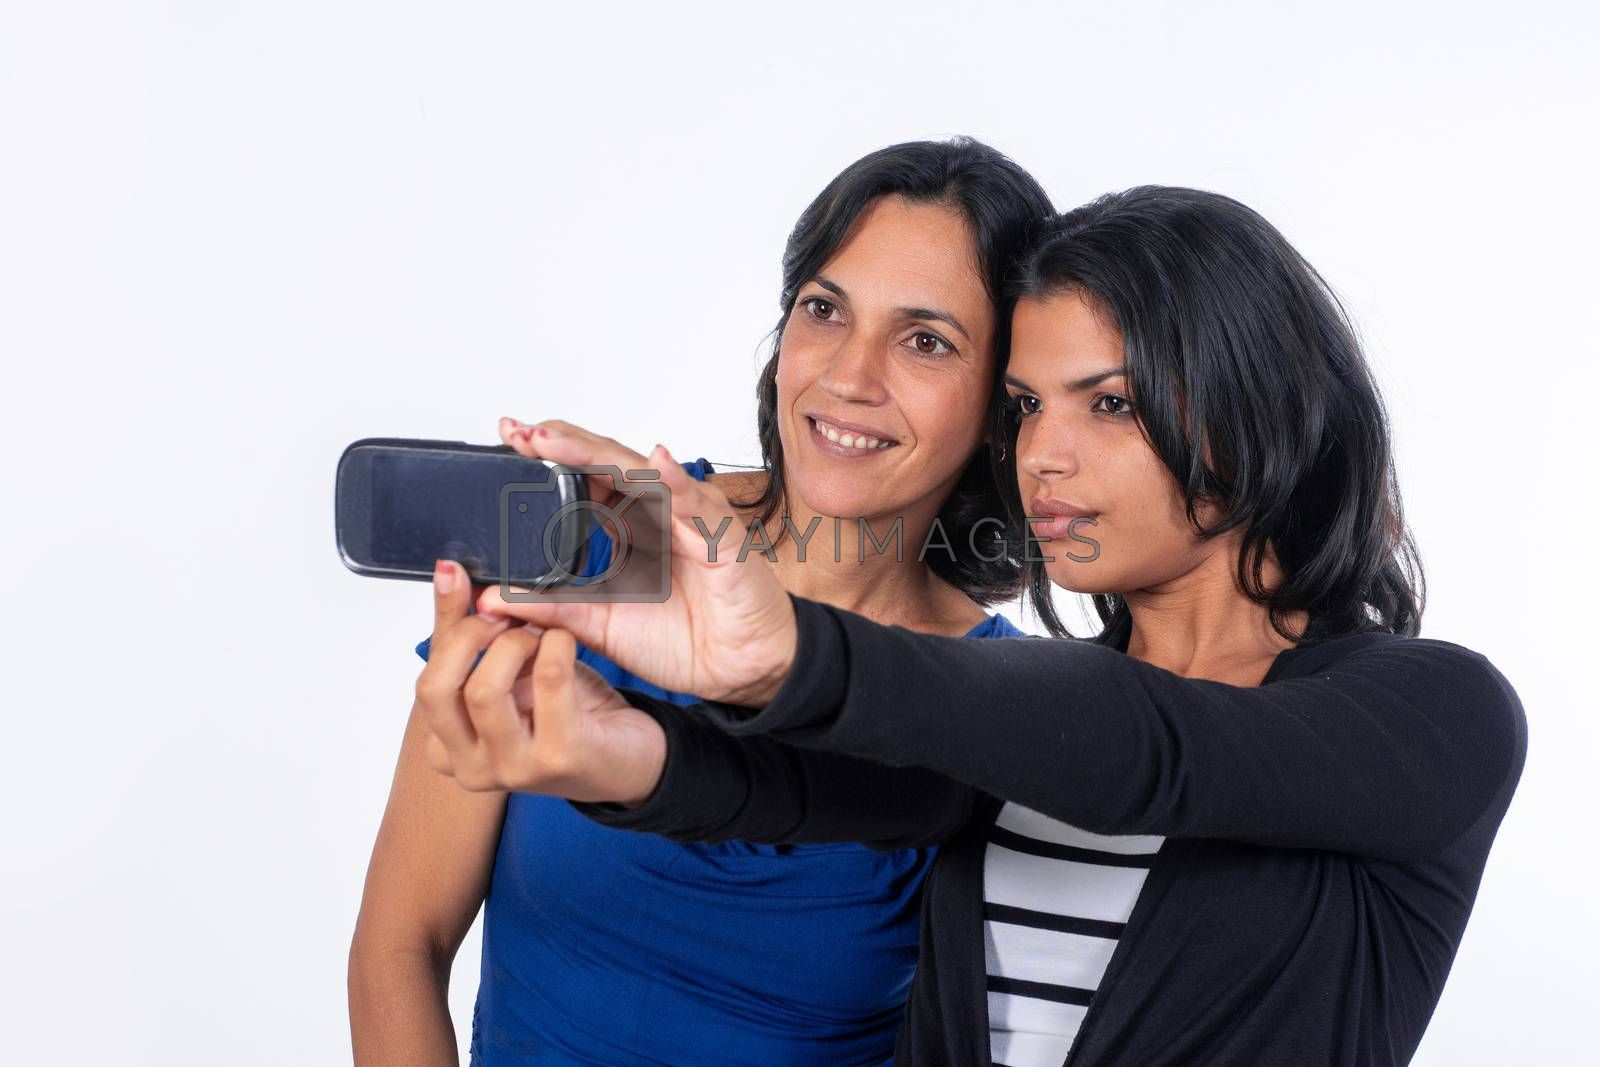 A woman and a girl taking a selfie with a cell phone. They both have black hair